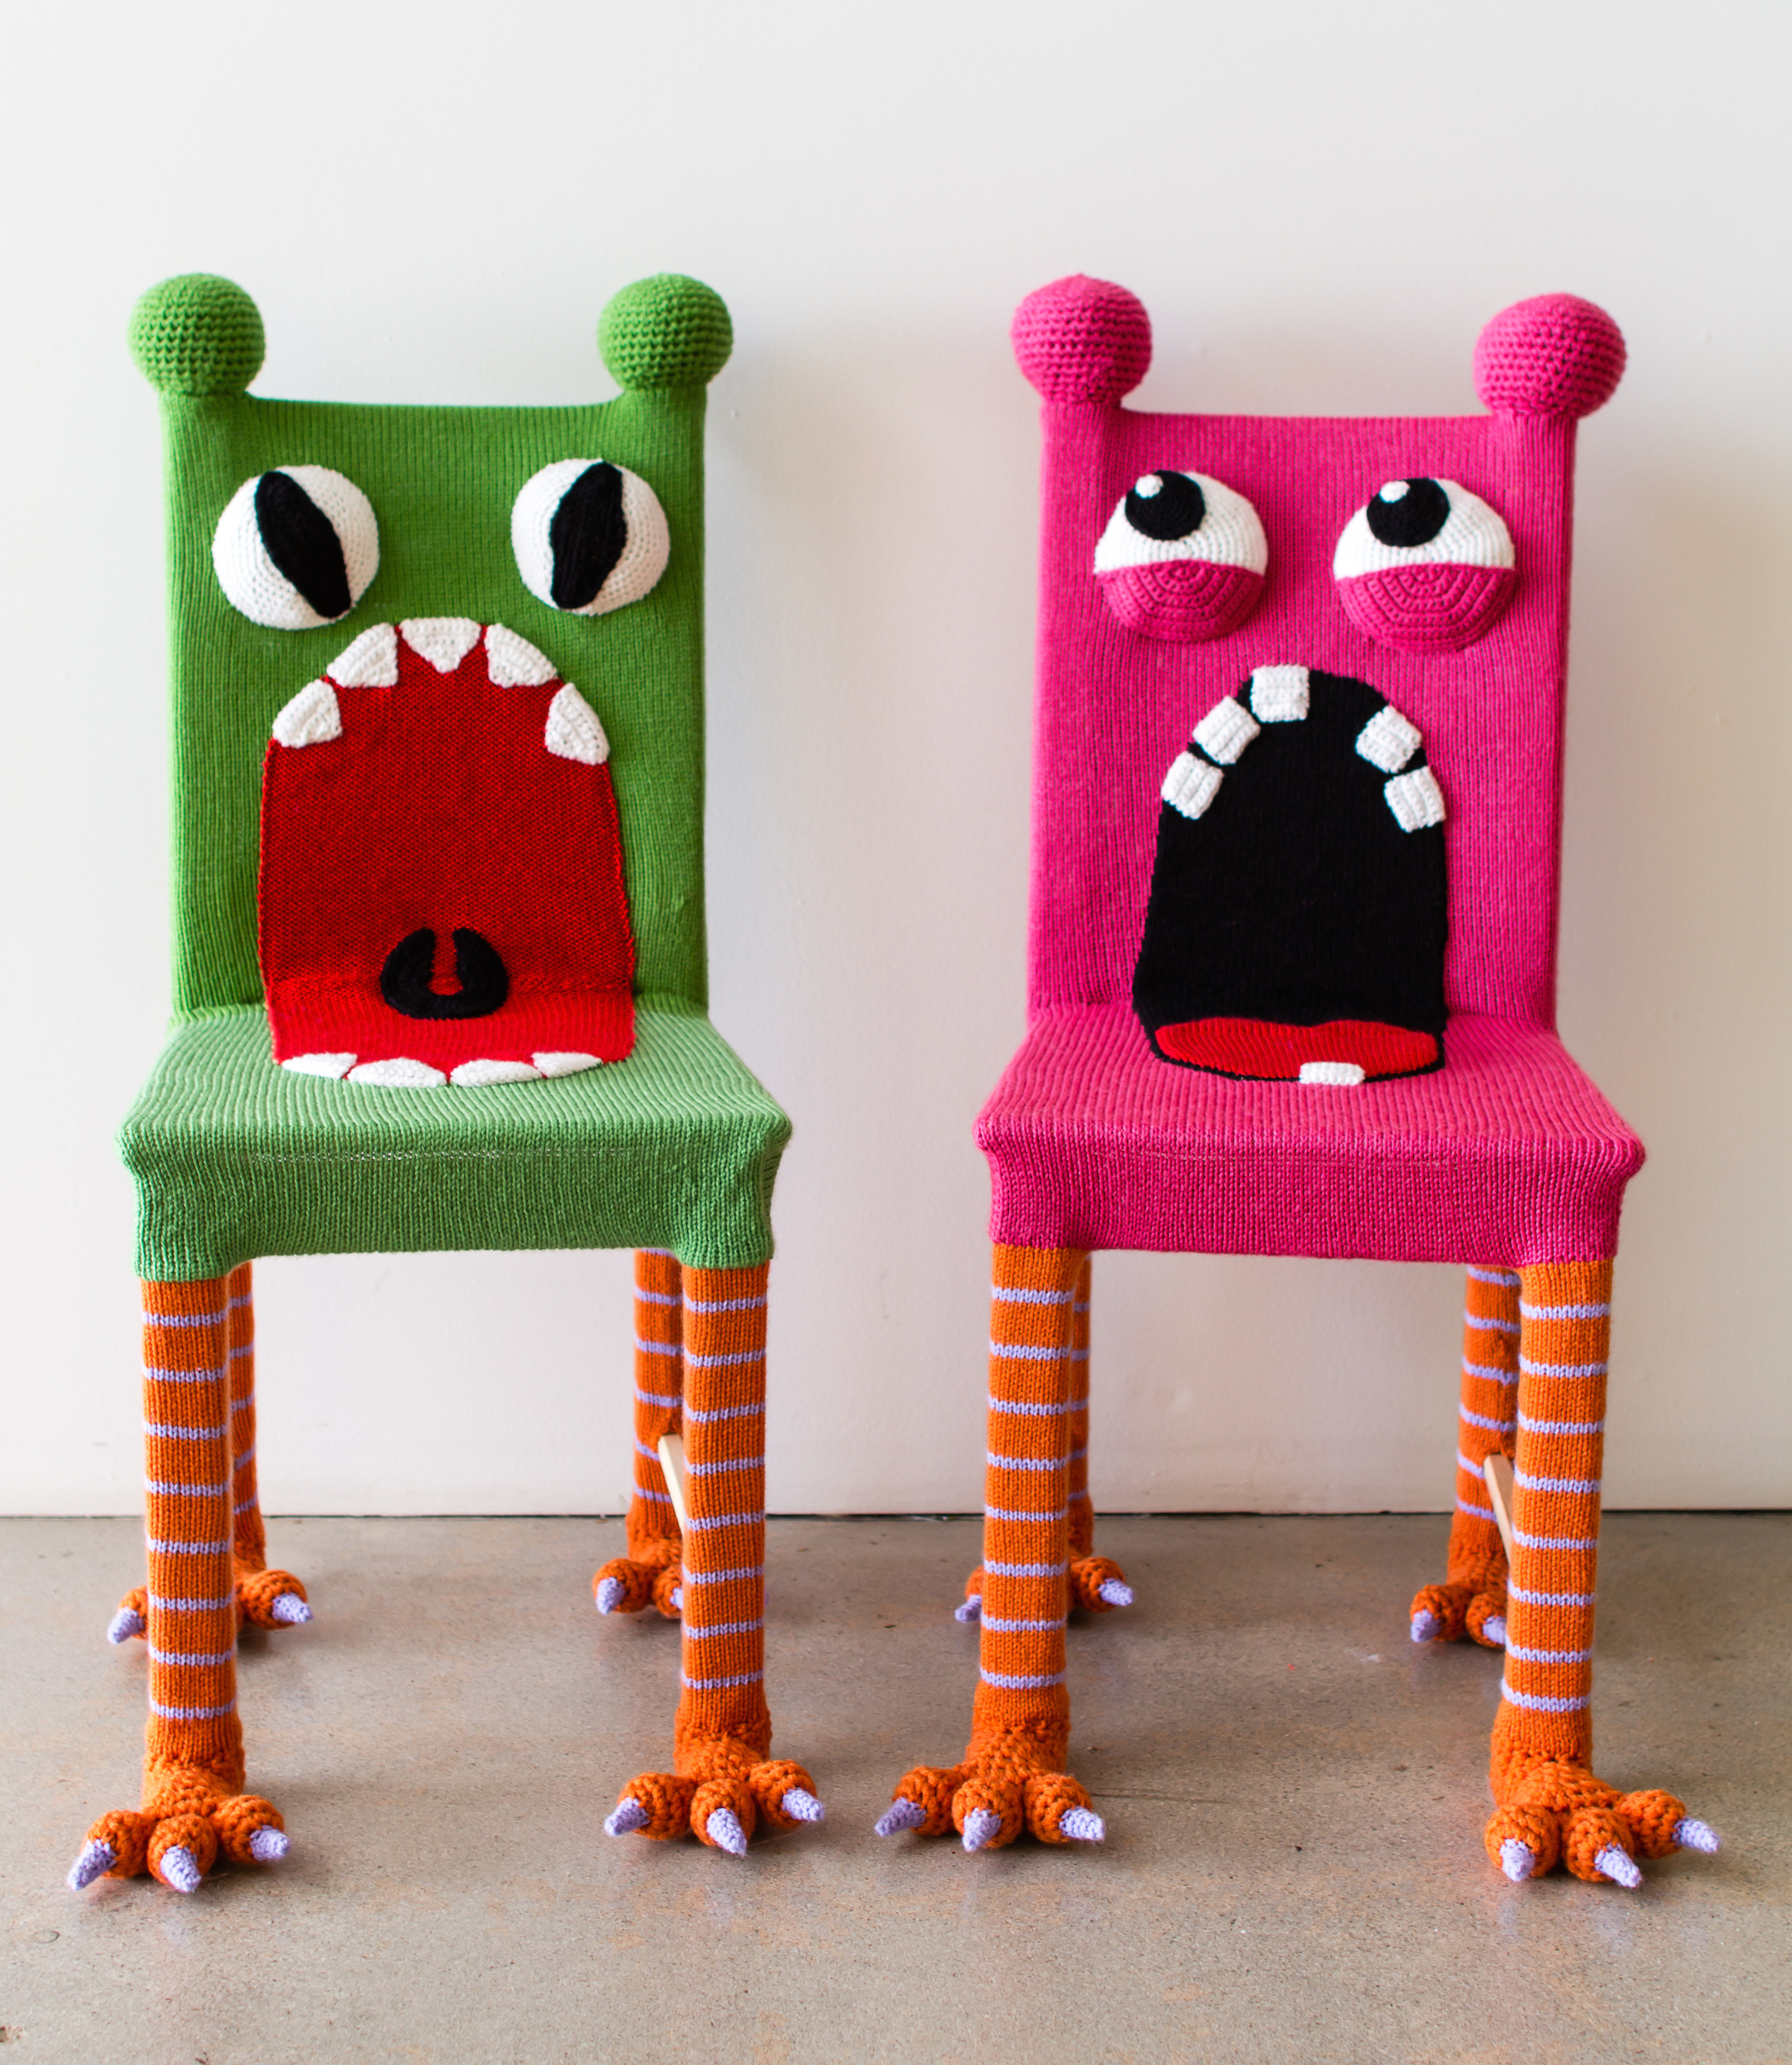 Knitted Furniture Yarn Bombed Monster Chairs Knits For Life